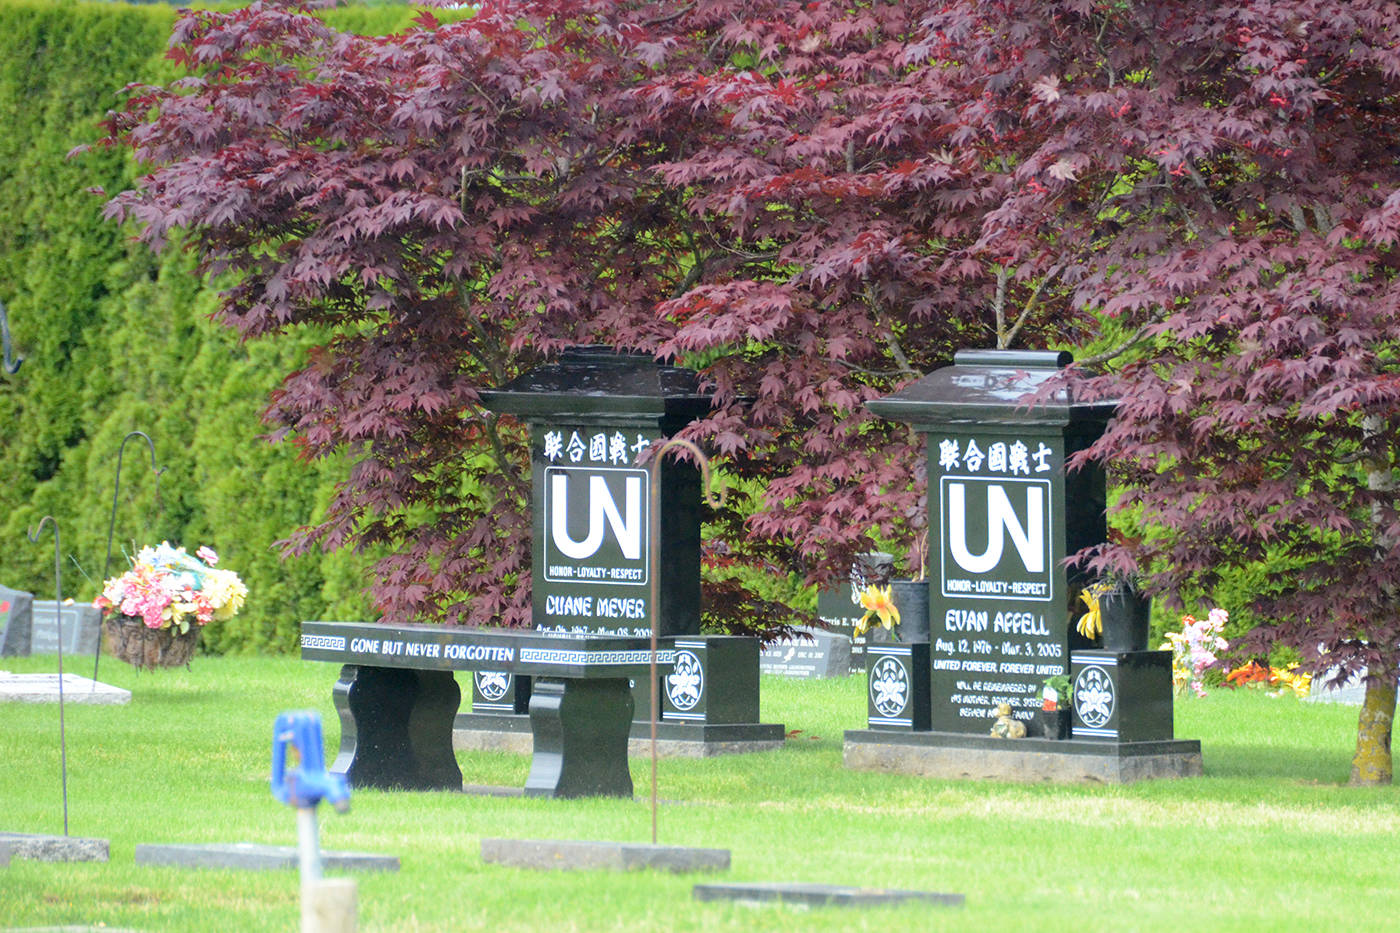 The grave sites of United Nations gang members Duane Meyer and Evan Appell on June 16, 2020 in Vedder View Gardens Cemetery in Chilliwack. There were two lion statues at the grave site that went missing since April. (Paul Henderson/ The Progress)